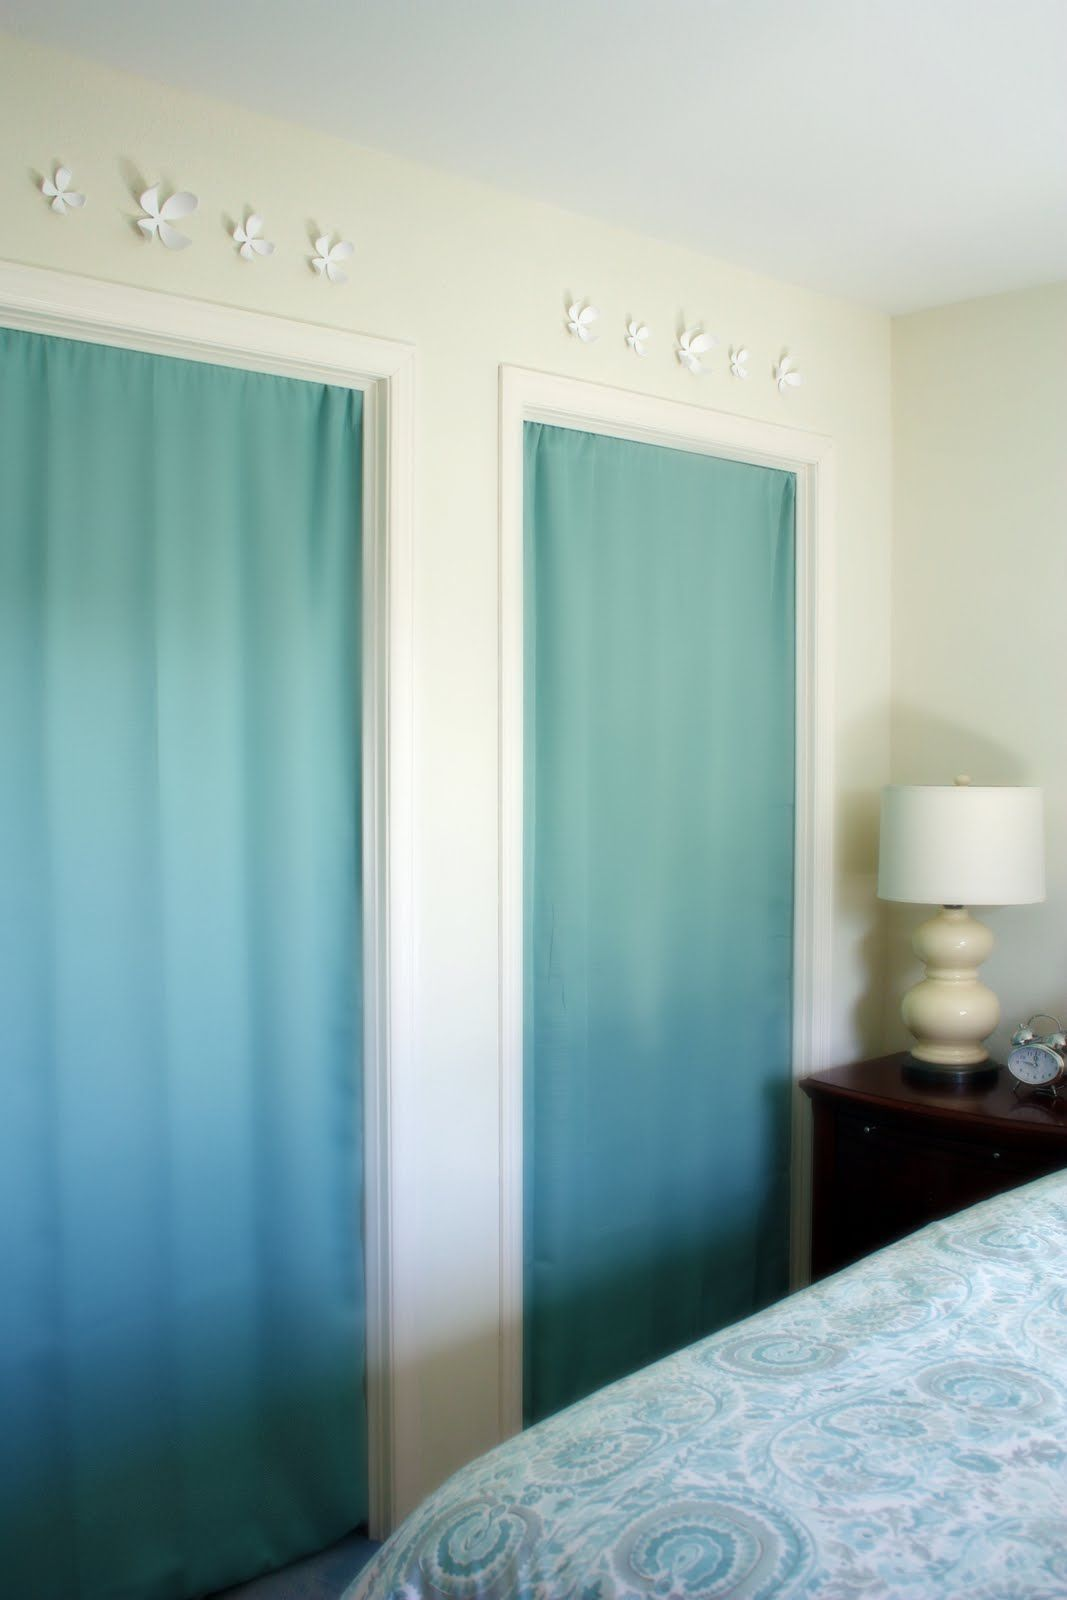 Bifold Door Alternatives Iheart Organizing Curtains On The Closet Home Stuff For Reality